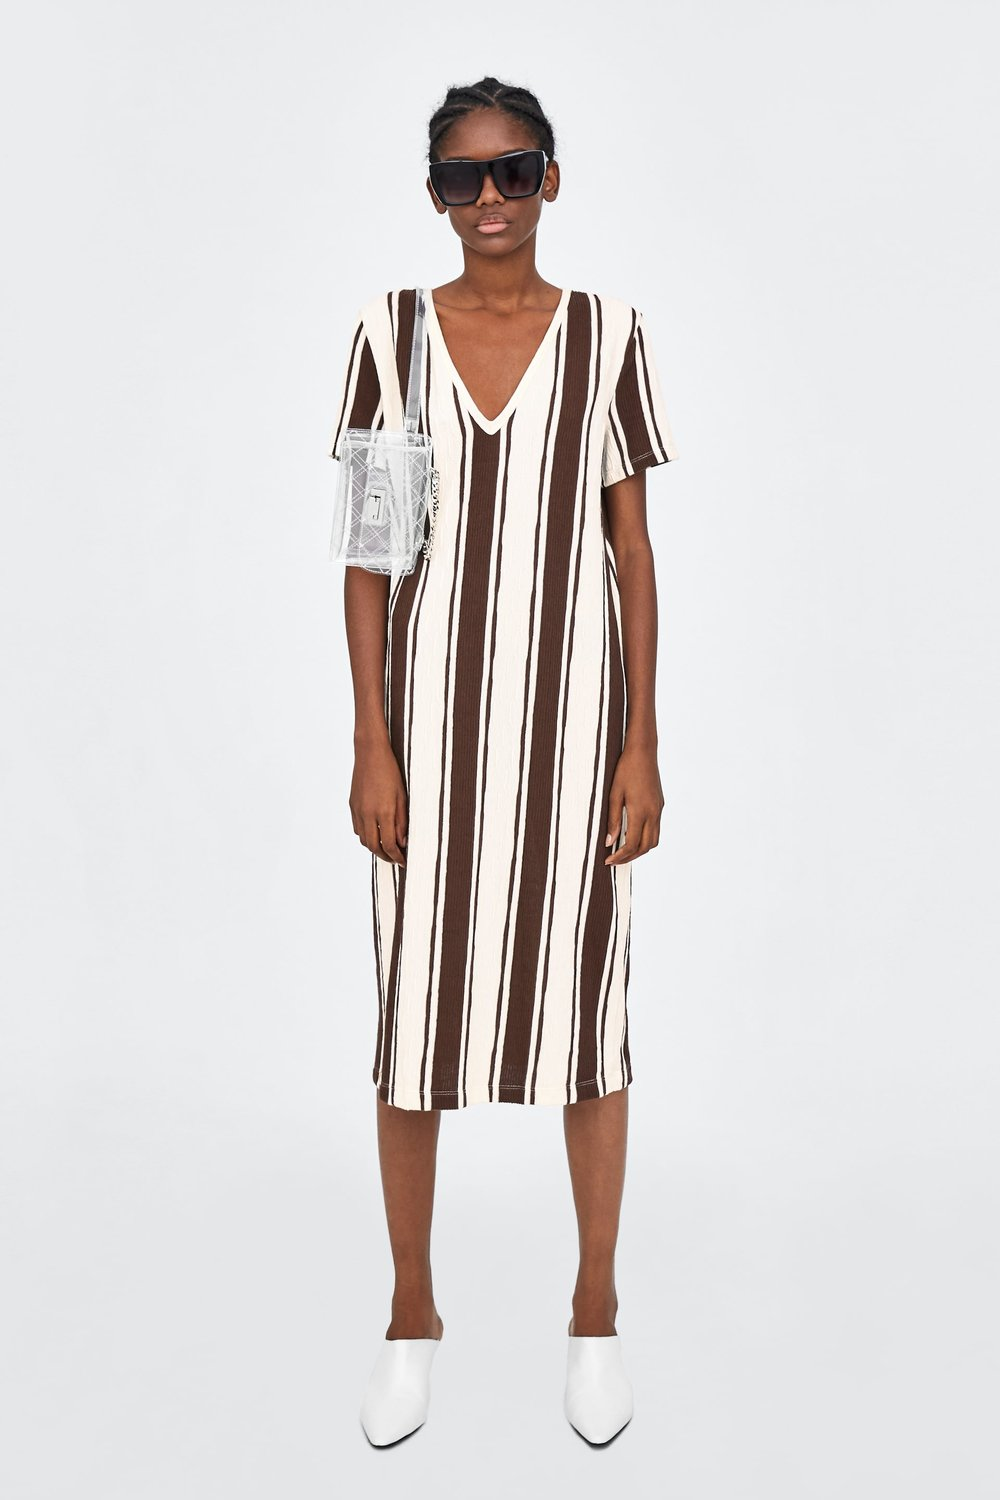 Zara Rustic Dress